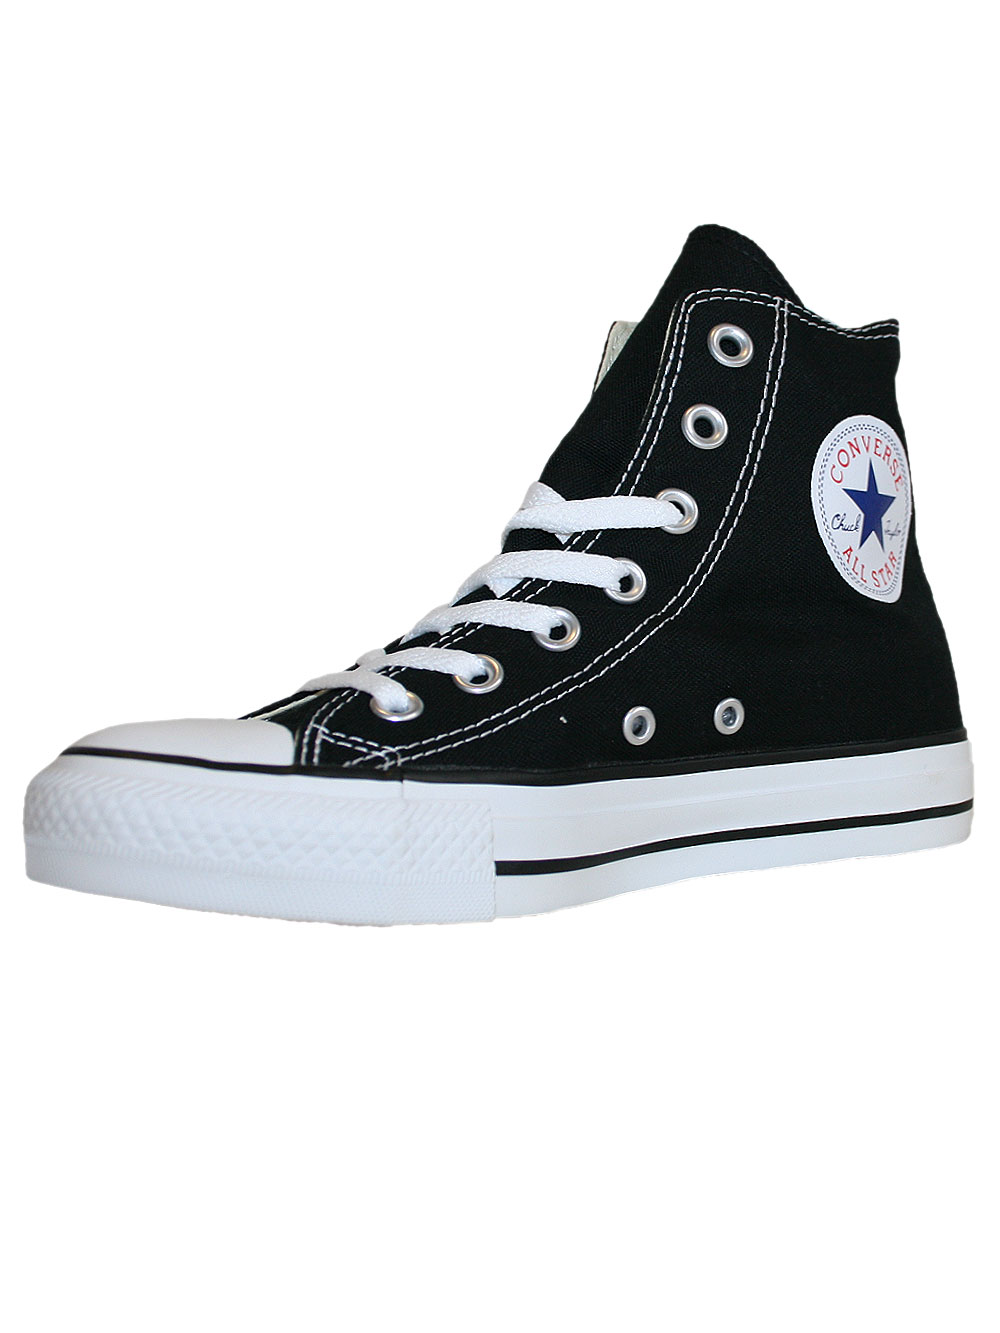 converse chucks all star classic high schuhe sneaker m9160 schwarz neu ebay. Black Bedroom Furniture Sets. Home Design Ideas